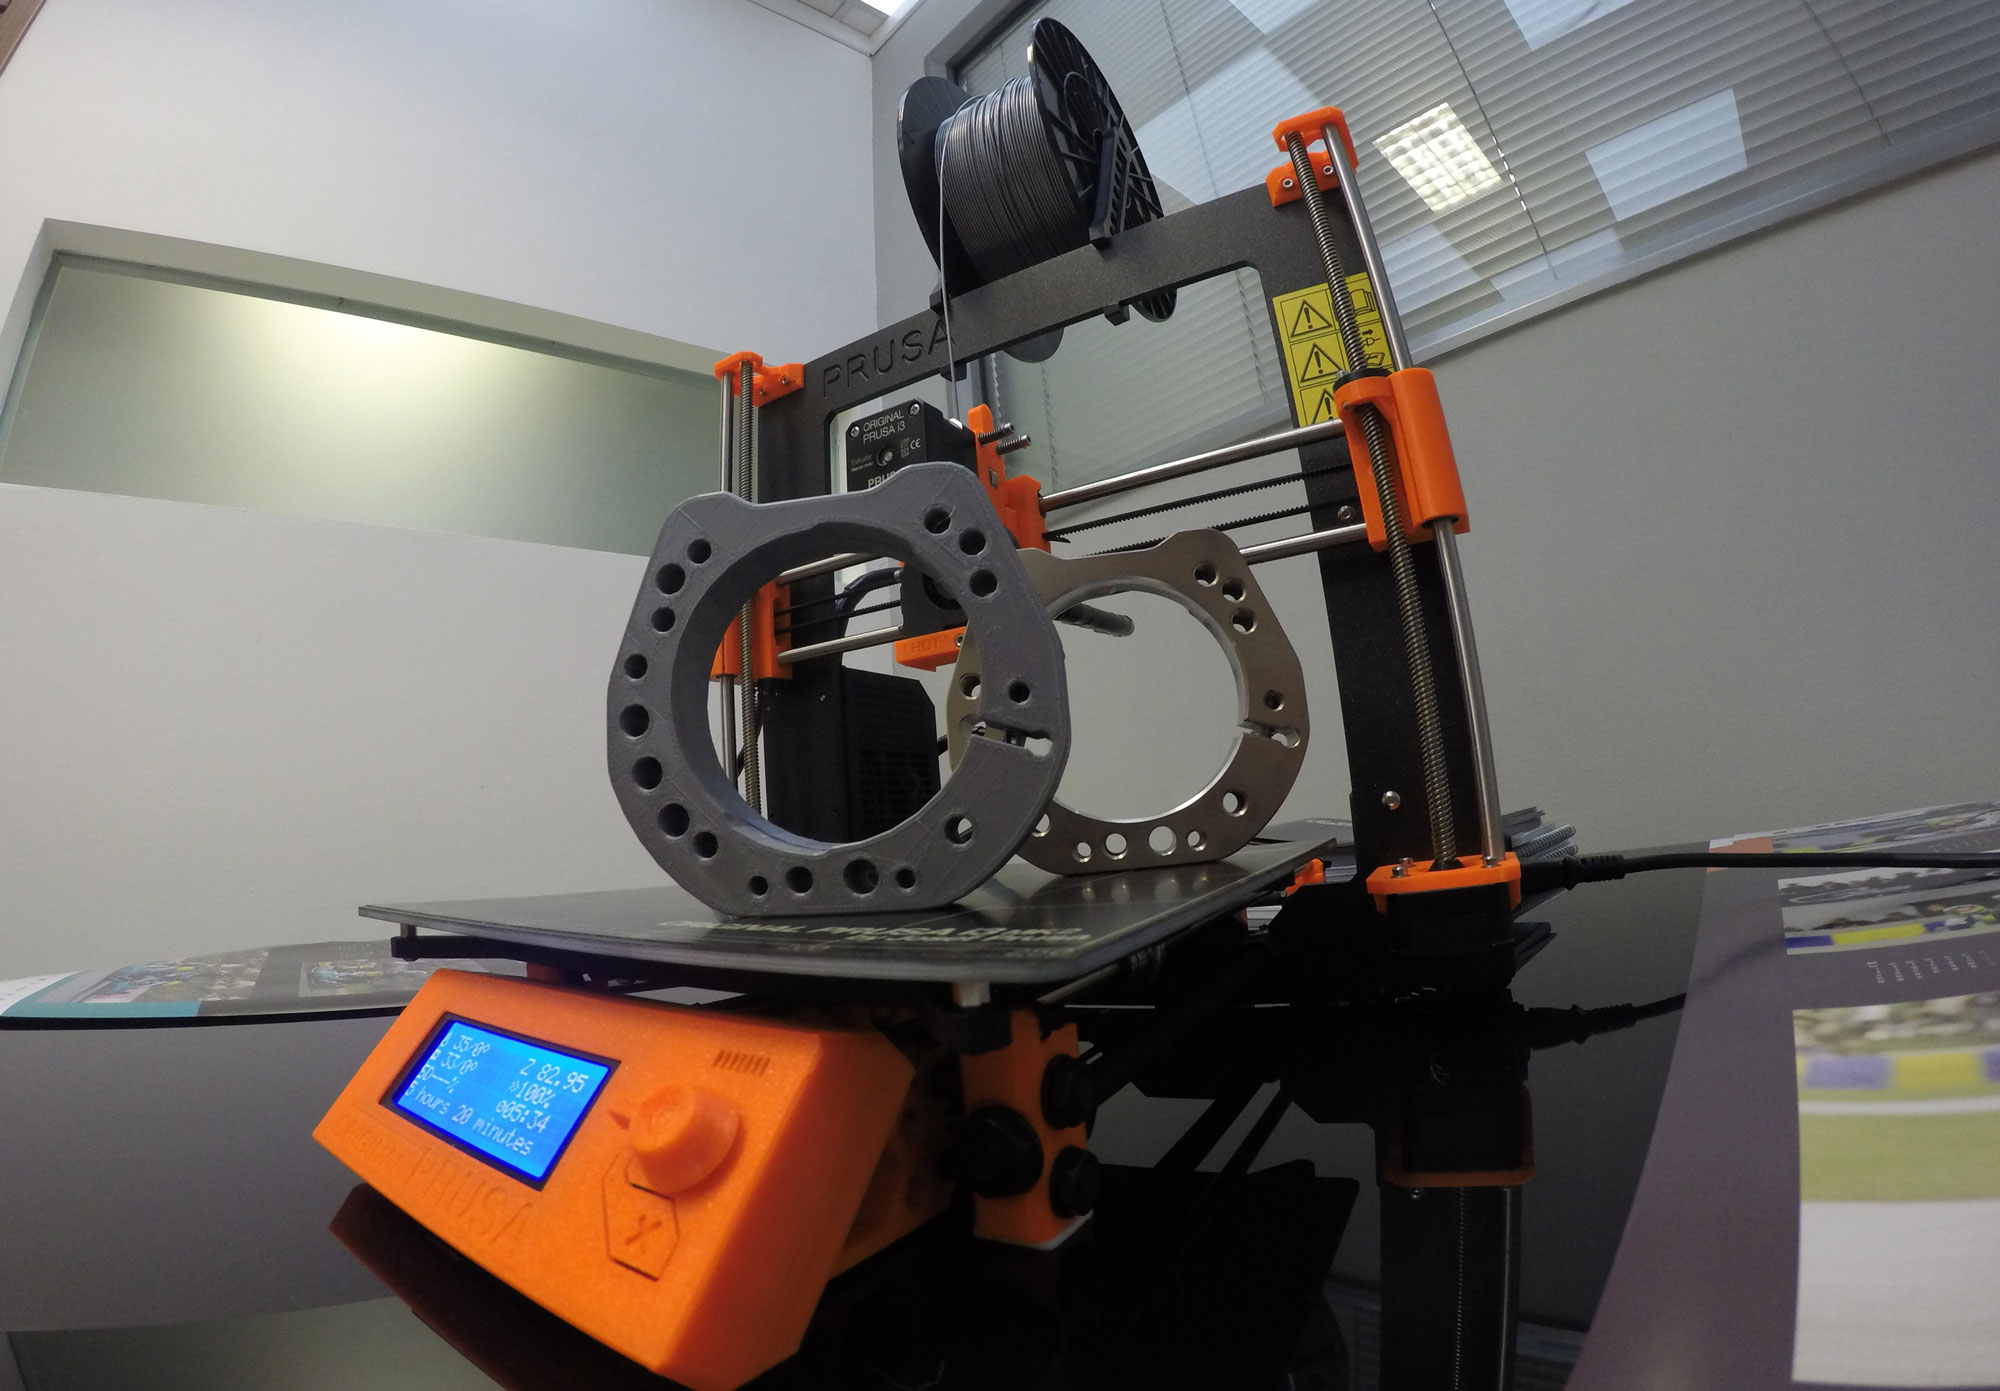 Prototypes of karting accessories using a 3D printer